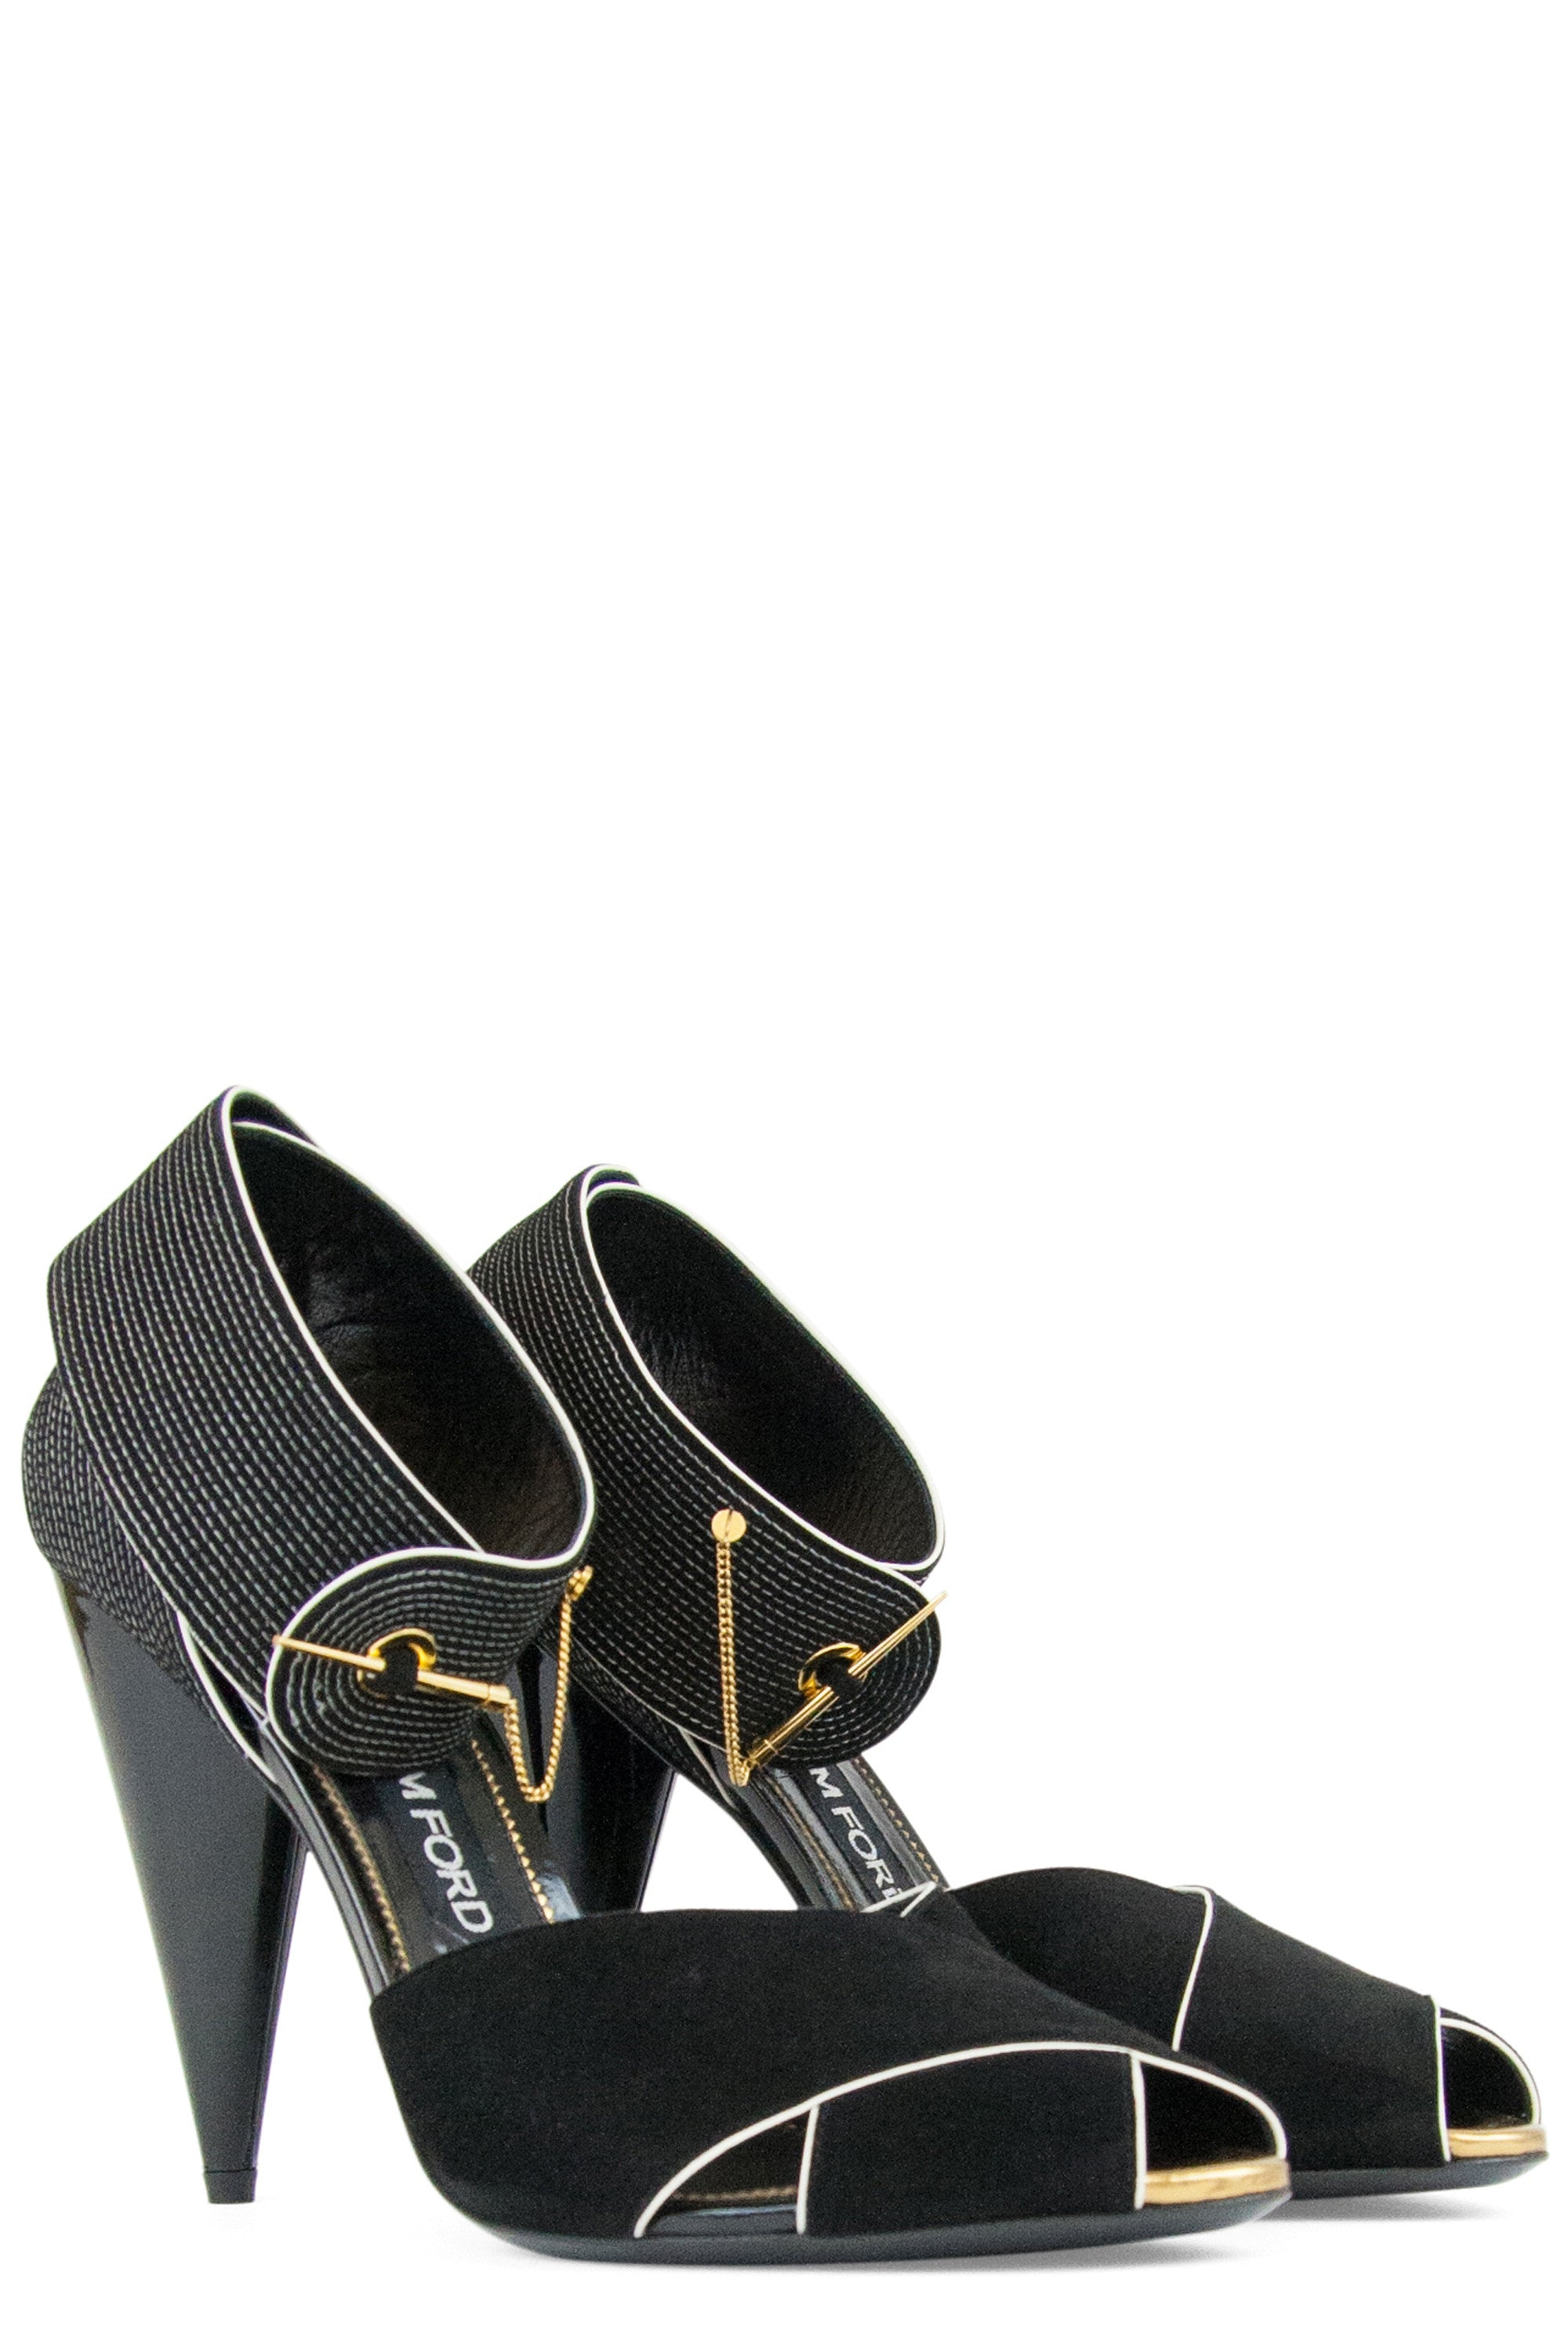 TOM FORD Sandals